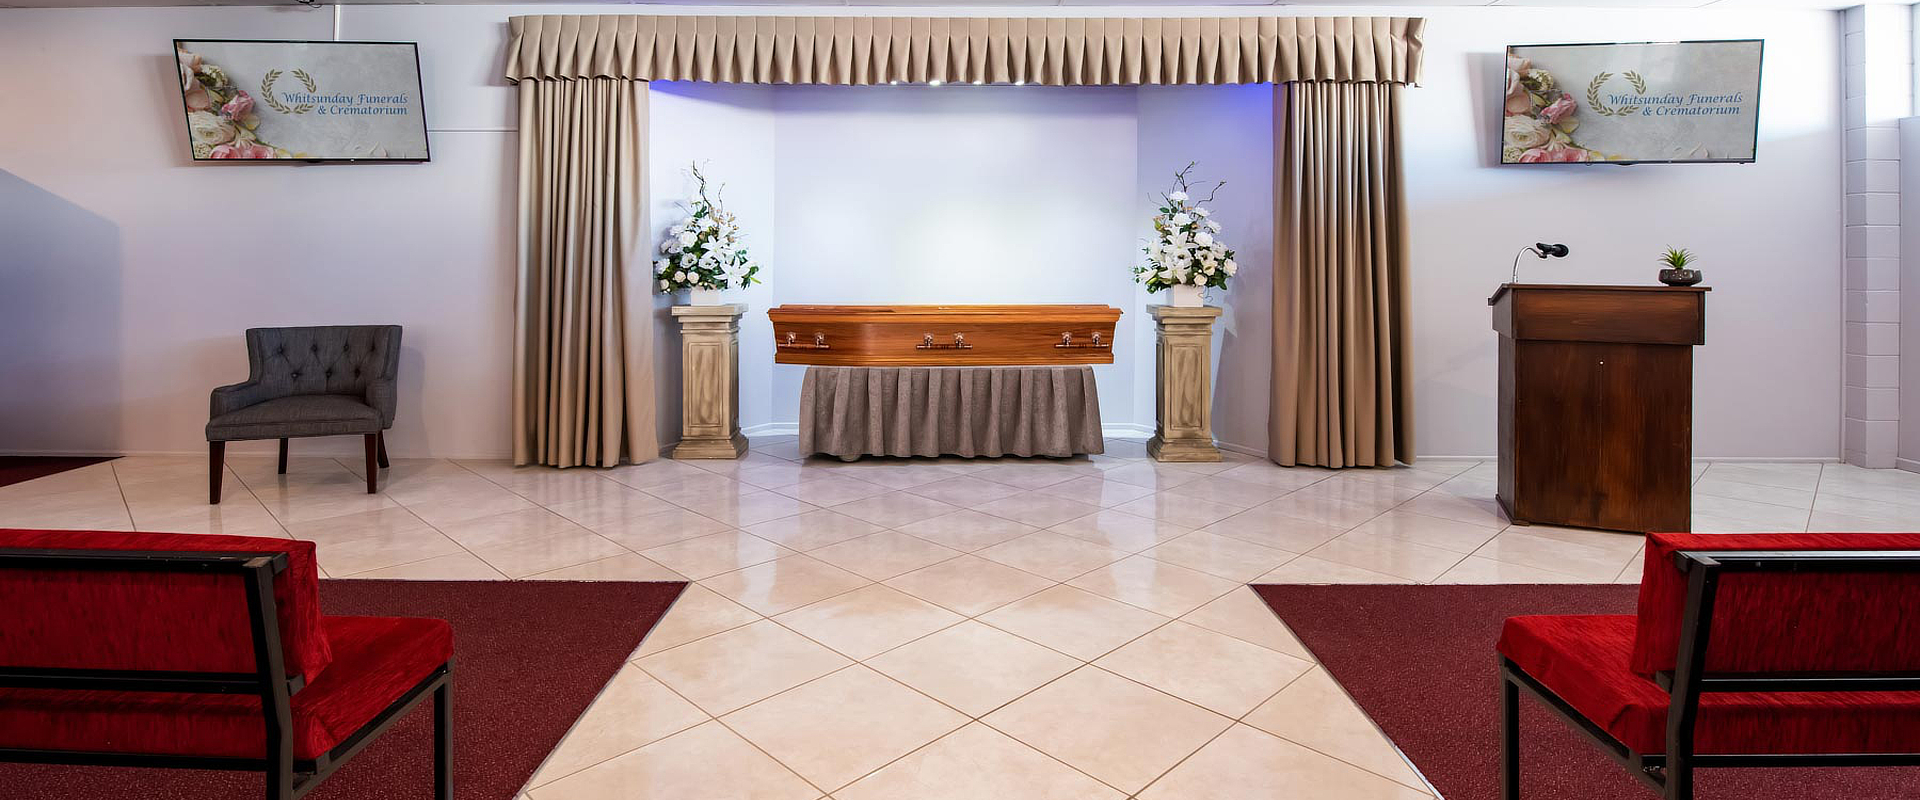 The 5 Underlying Issues of the Australian Funeral Industry